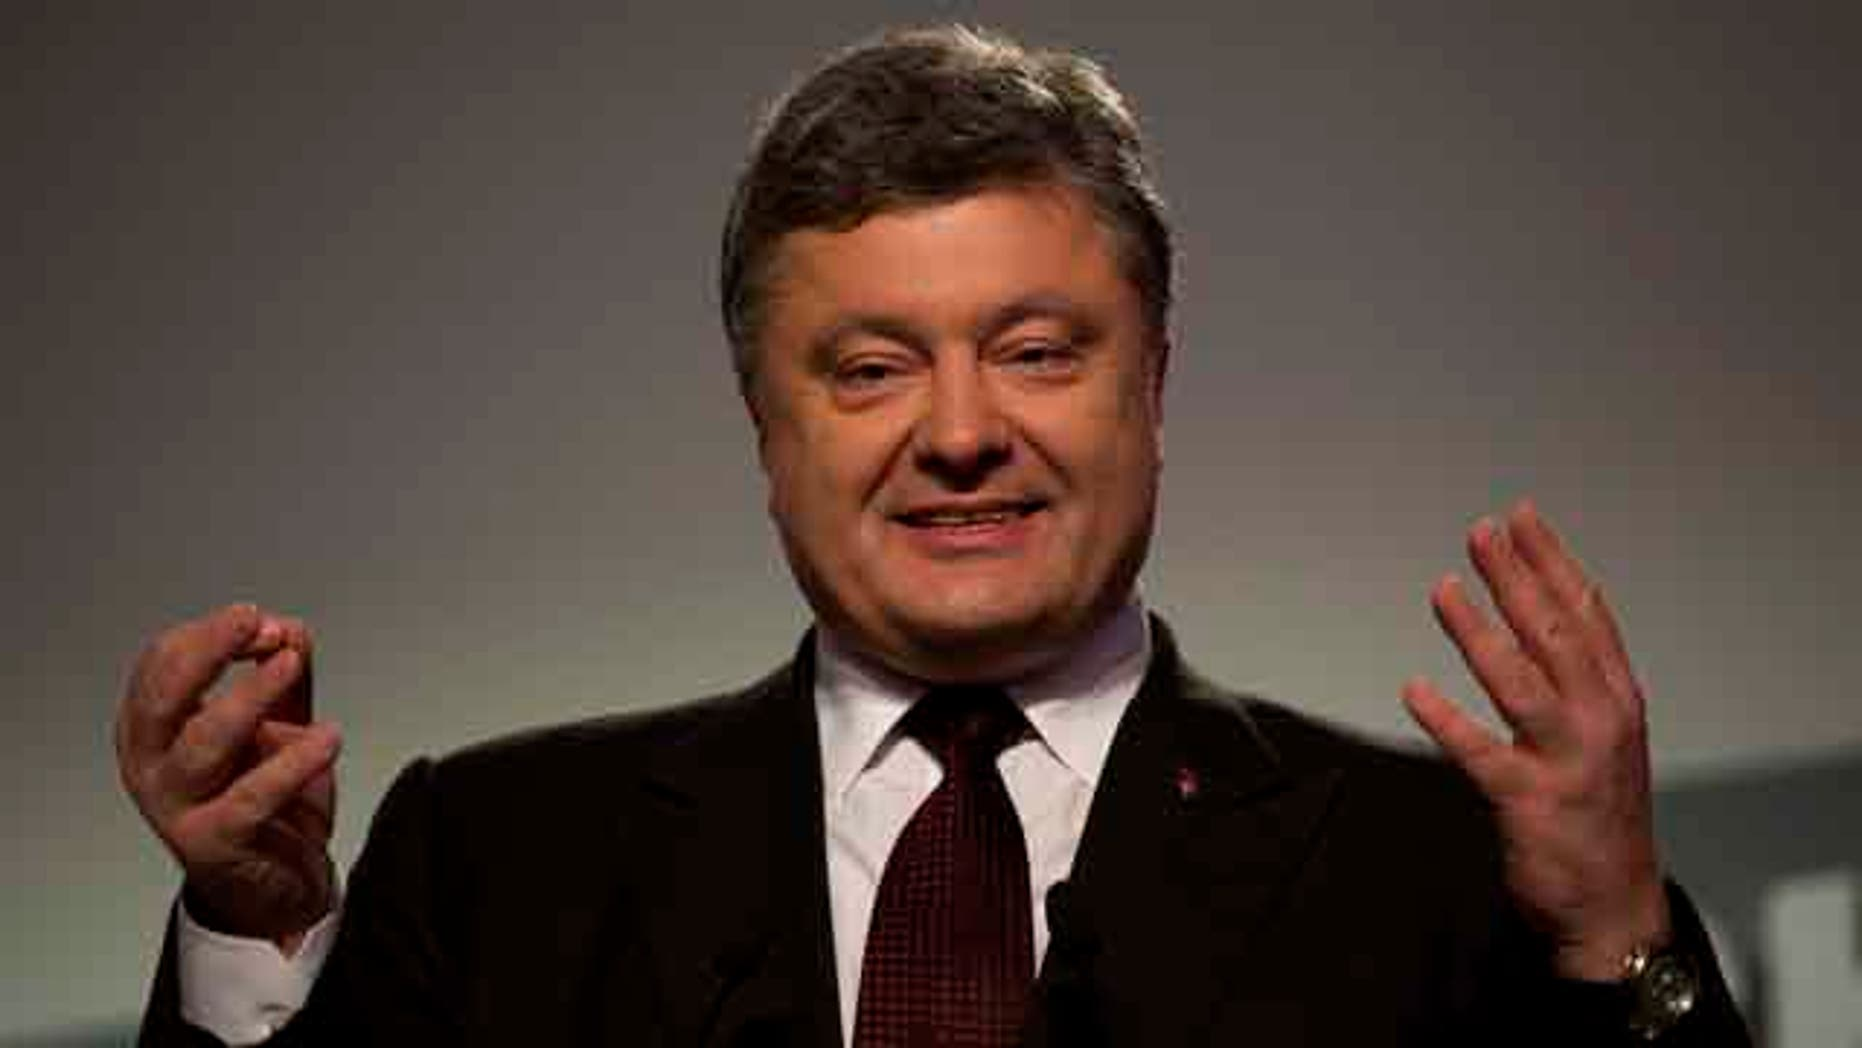 October 26, 2014: Ukrainian President Petro Poroshenko at a press conference following the parliamentary elections in Kiev. Exit polls indicate Ukrainians overwhelmingly voted for several pro-Western parties in a landmark parliamentary election Sunday.